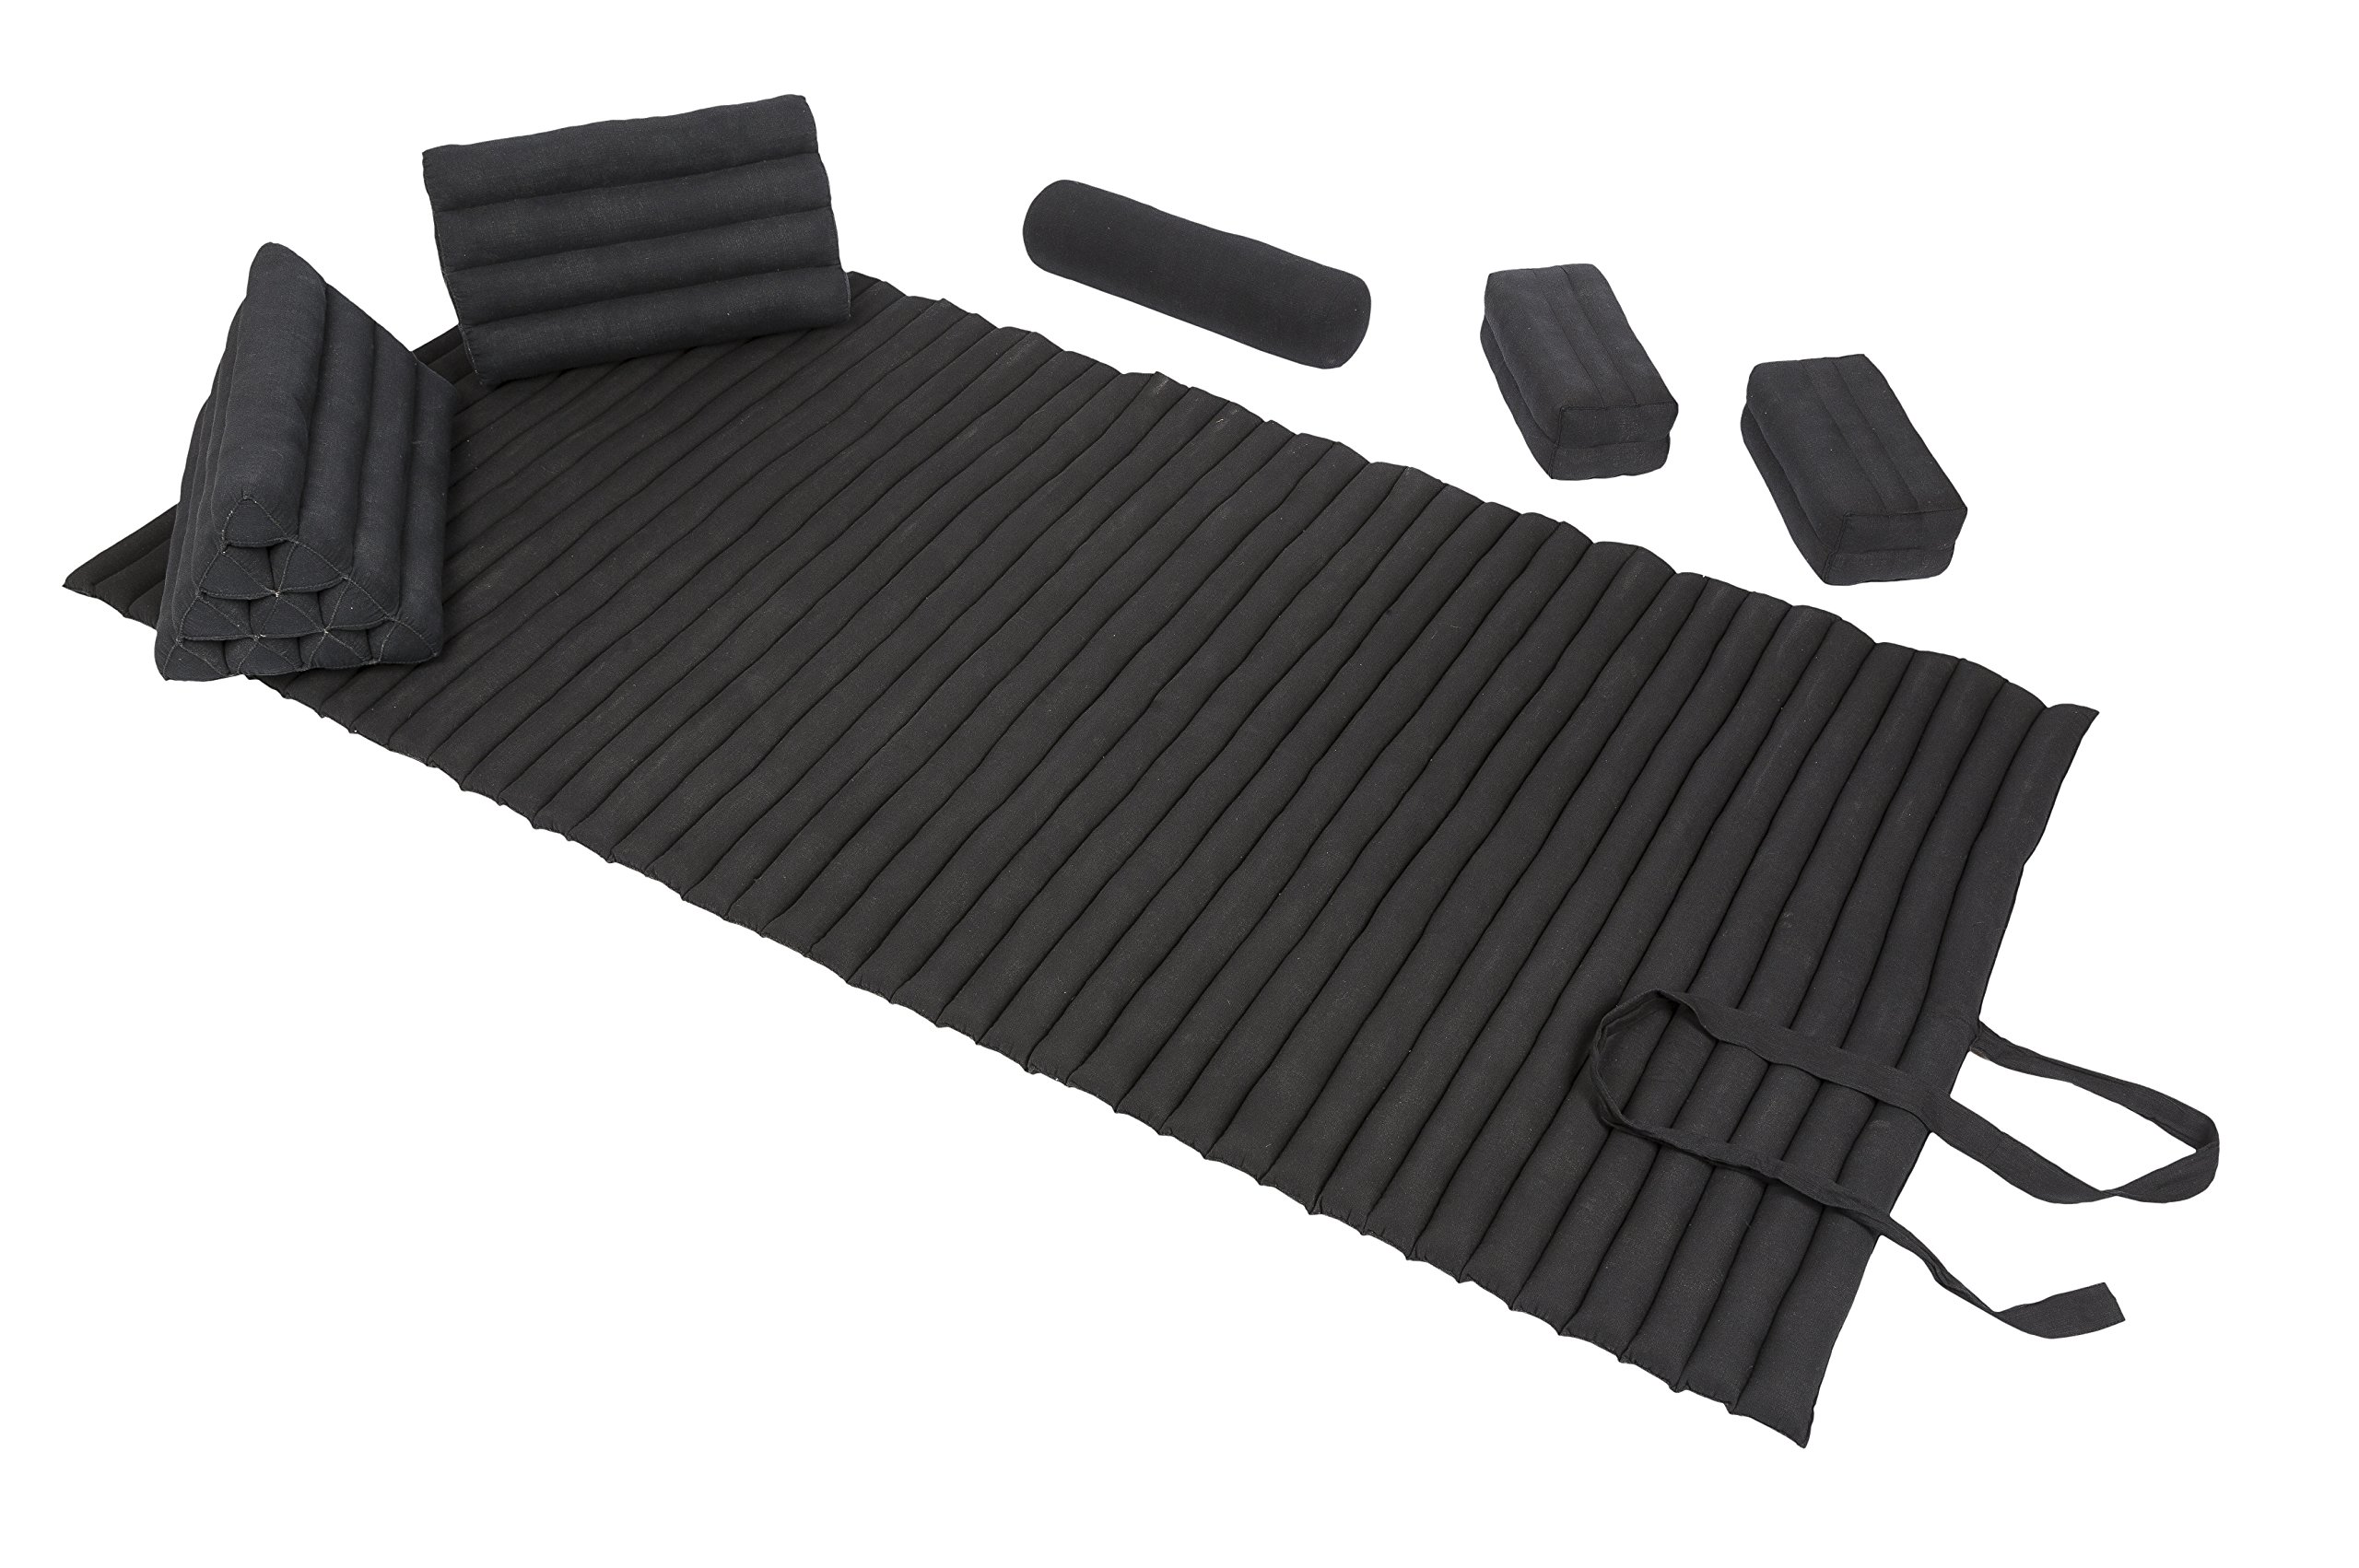 Thai Chill + Massage Set (black): Rollmat + Triangles + Bolster + Pillows by Handelsturm